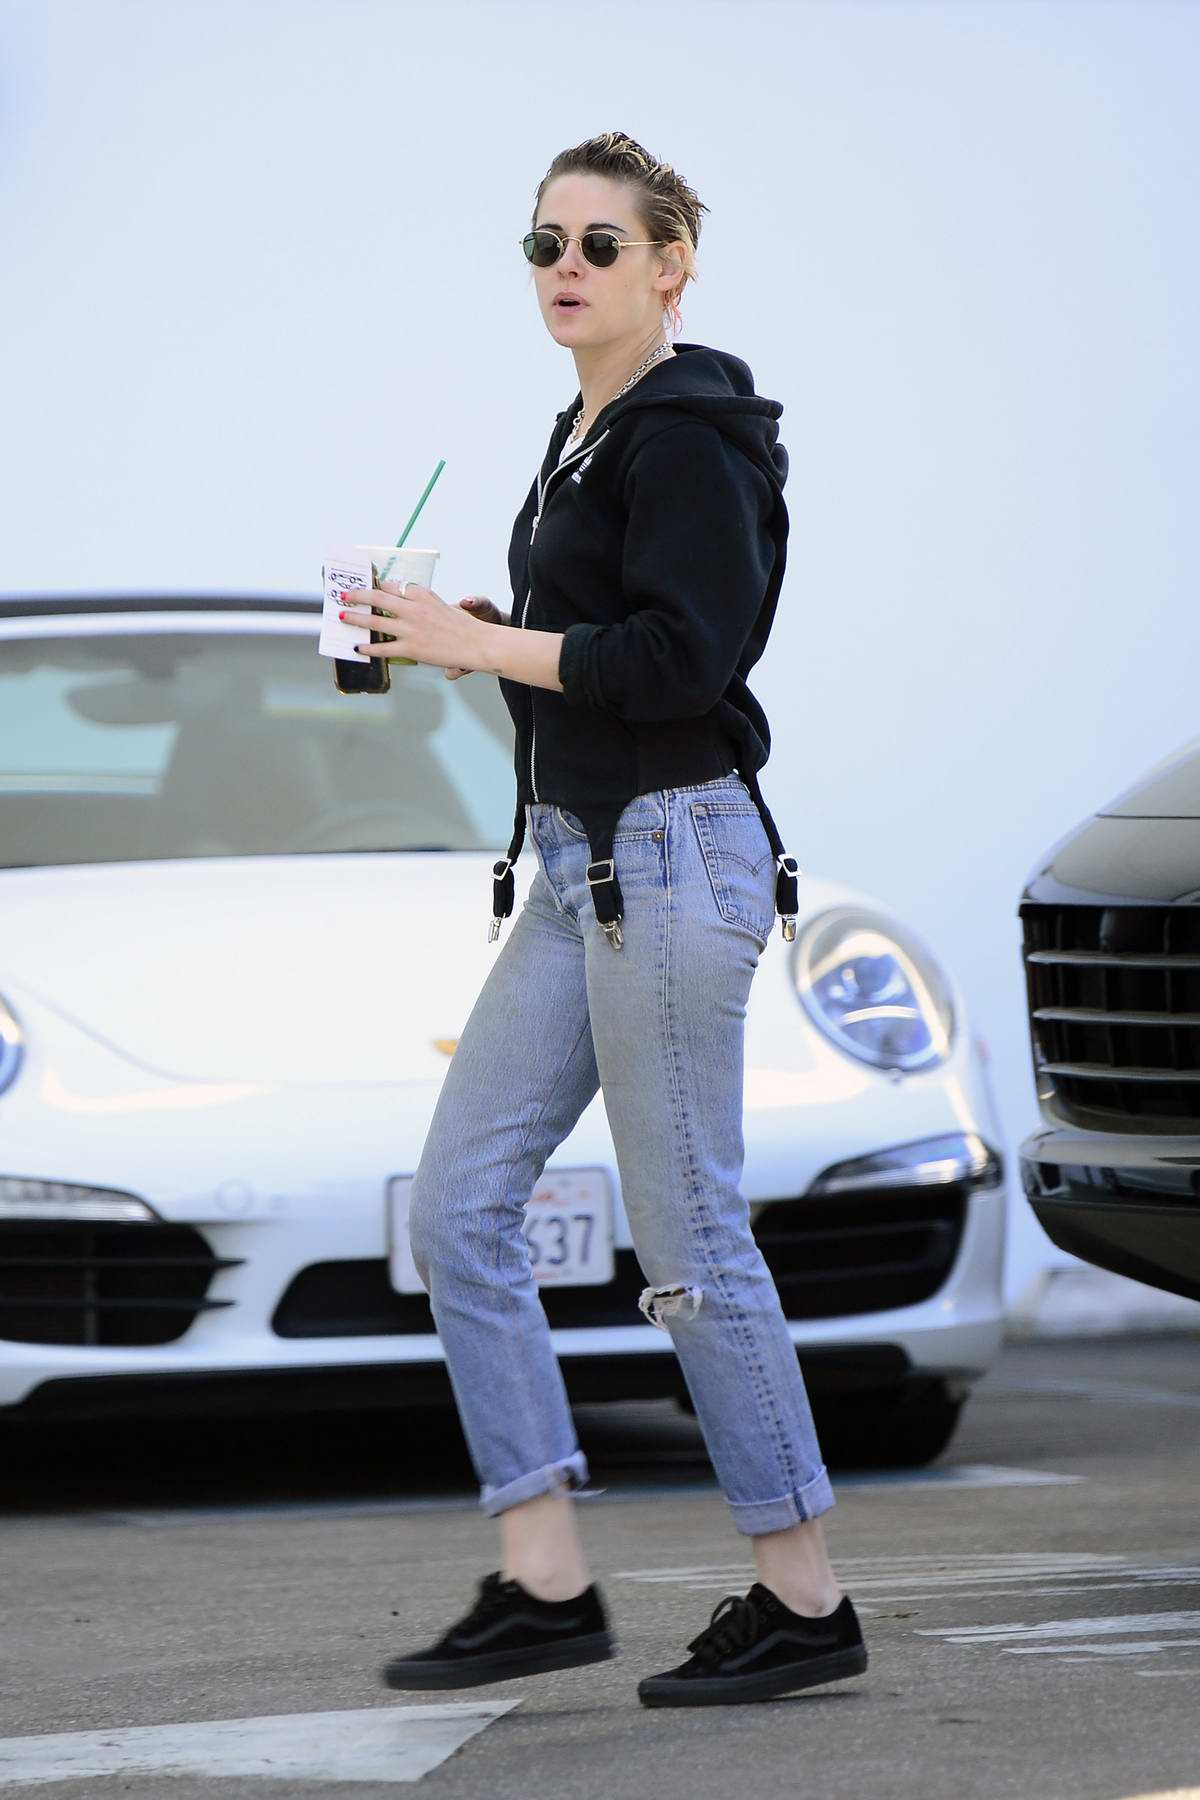 Kristen Stewart and Stella Maxwell at the Chanel boutique on Rodeo Drive in Beverly Hills, Los Angeles